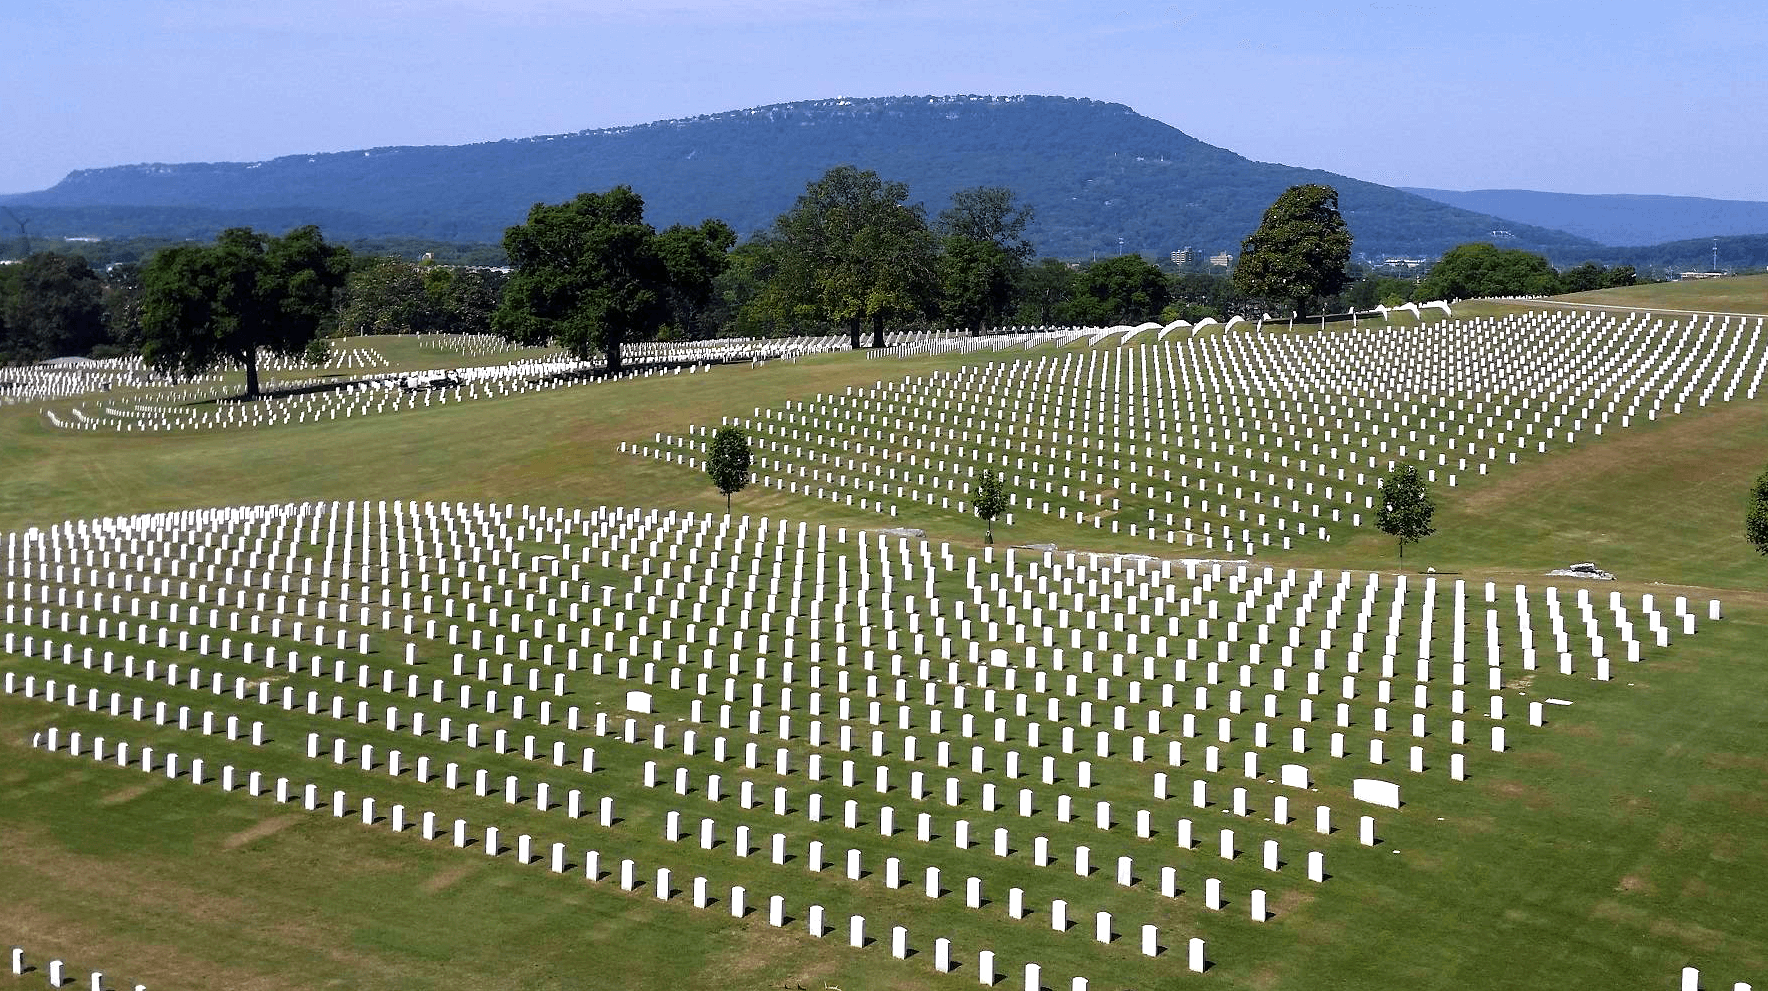 veteran funeral services in Chattanooga, TN